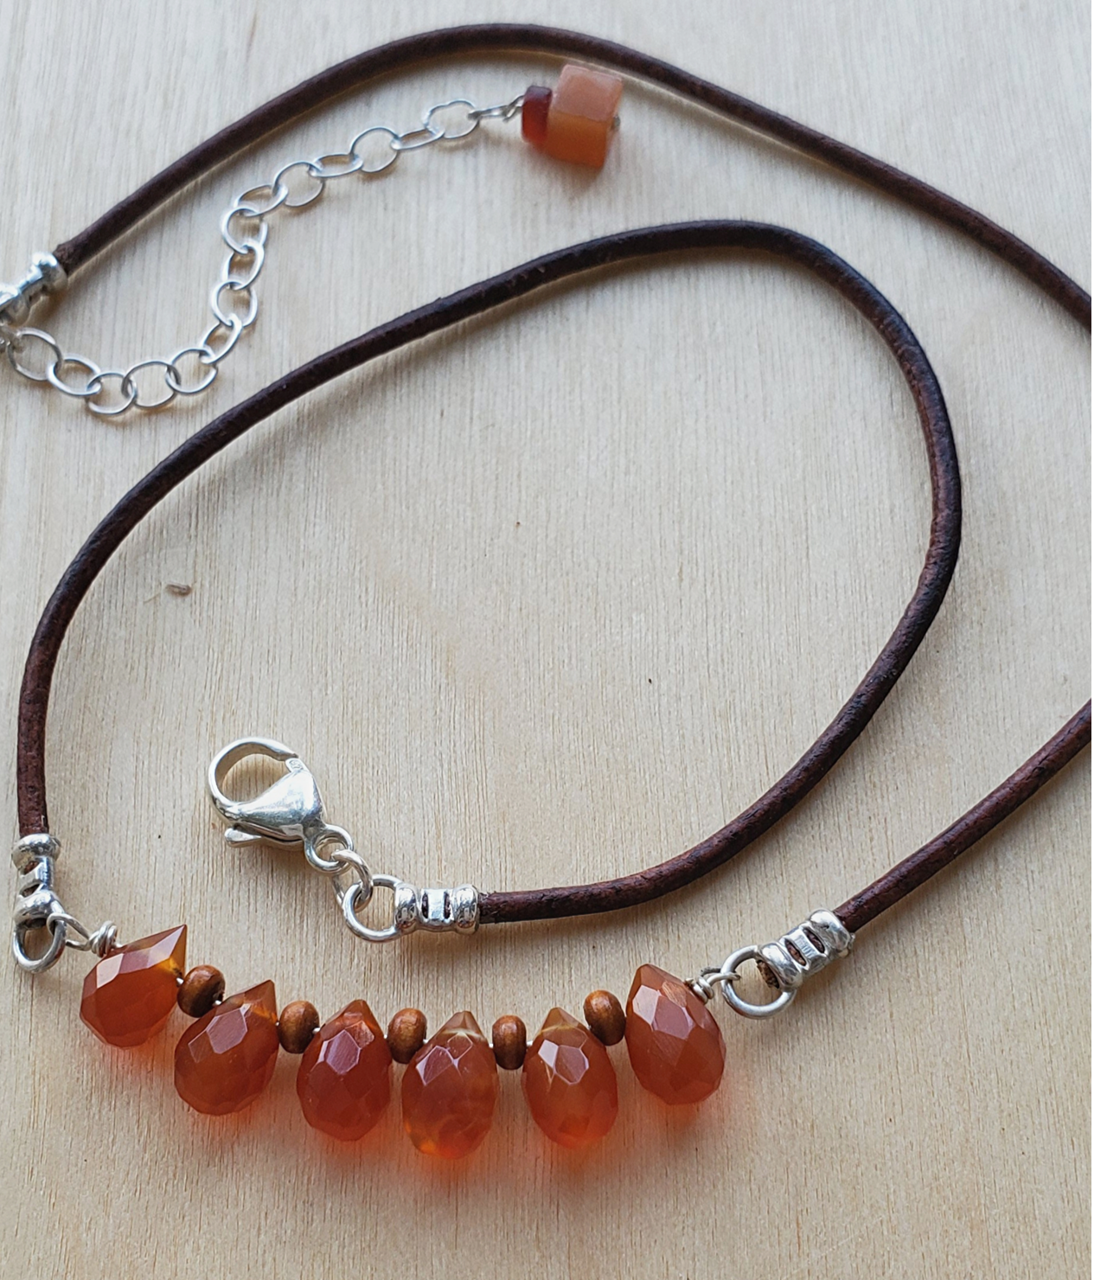 Casual Brown leather orange gemstone necklace on wood